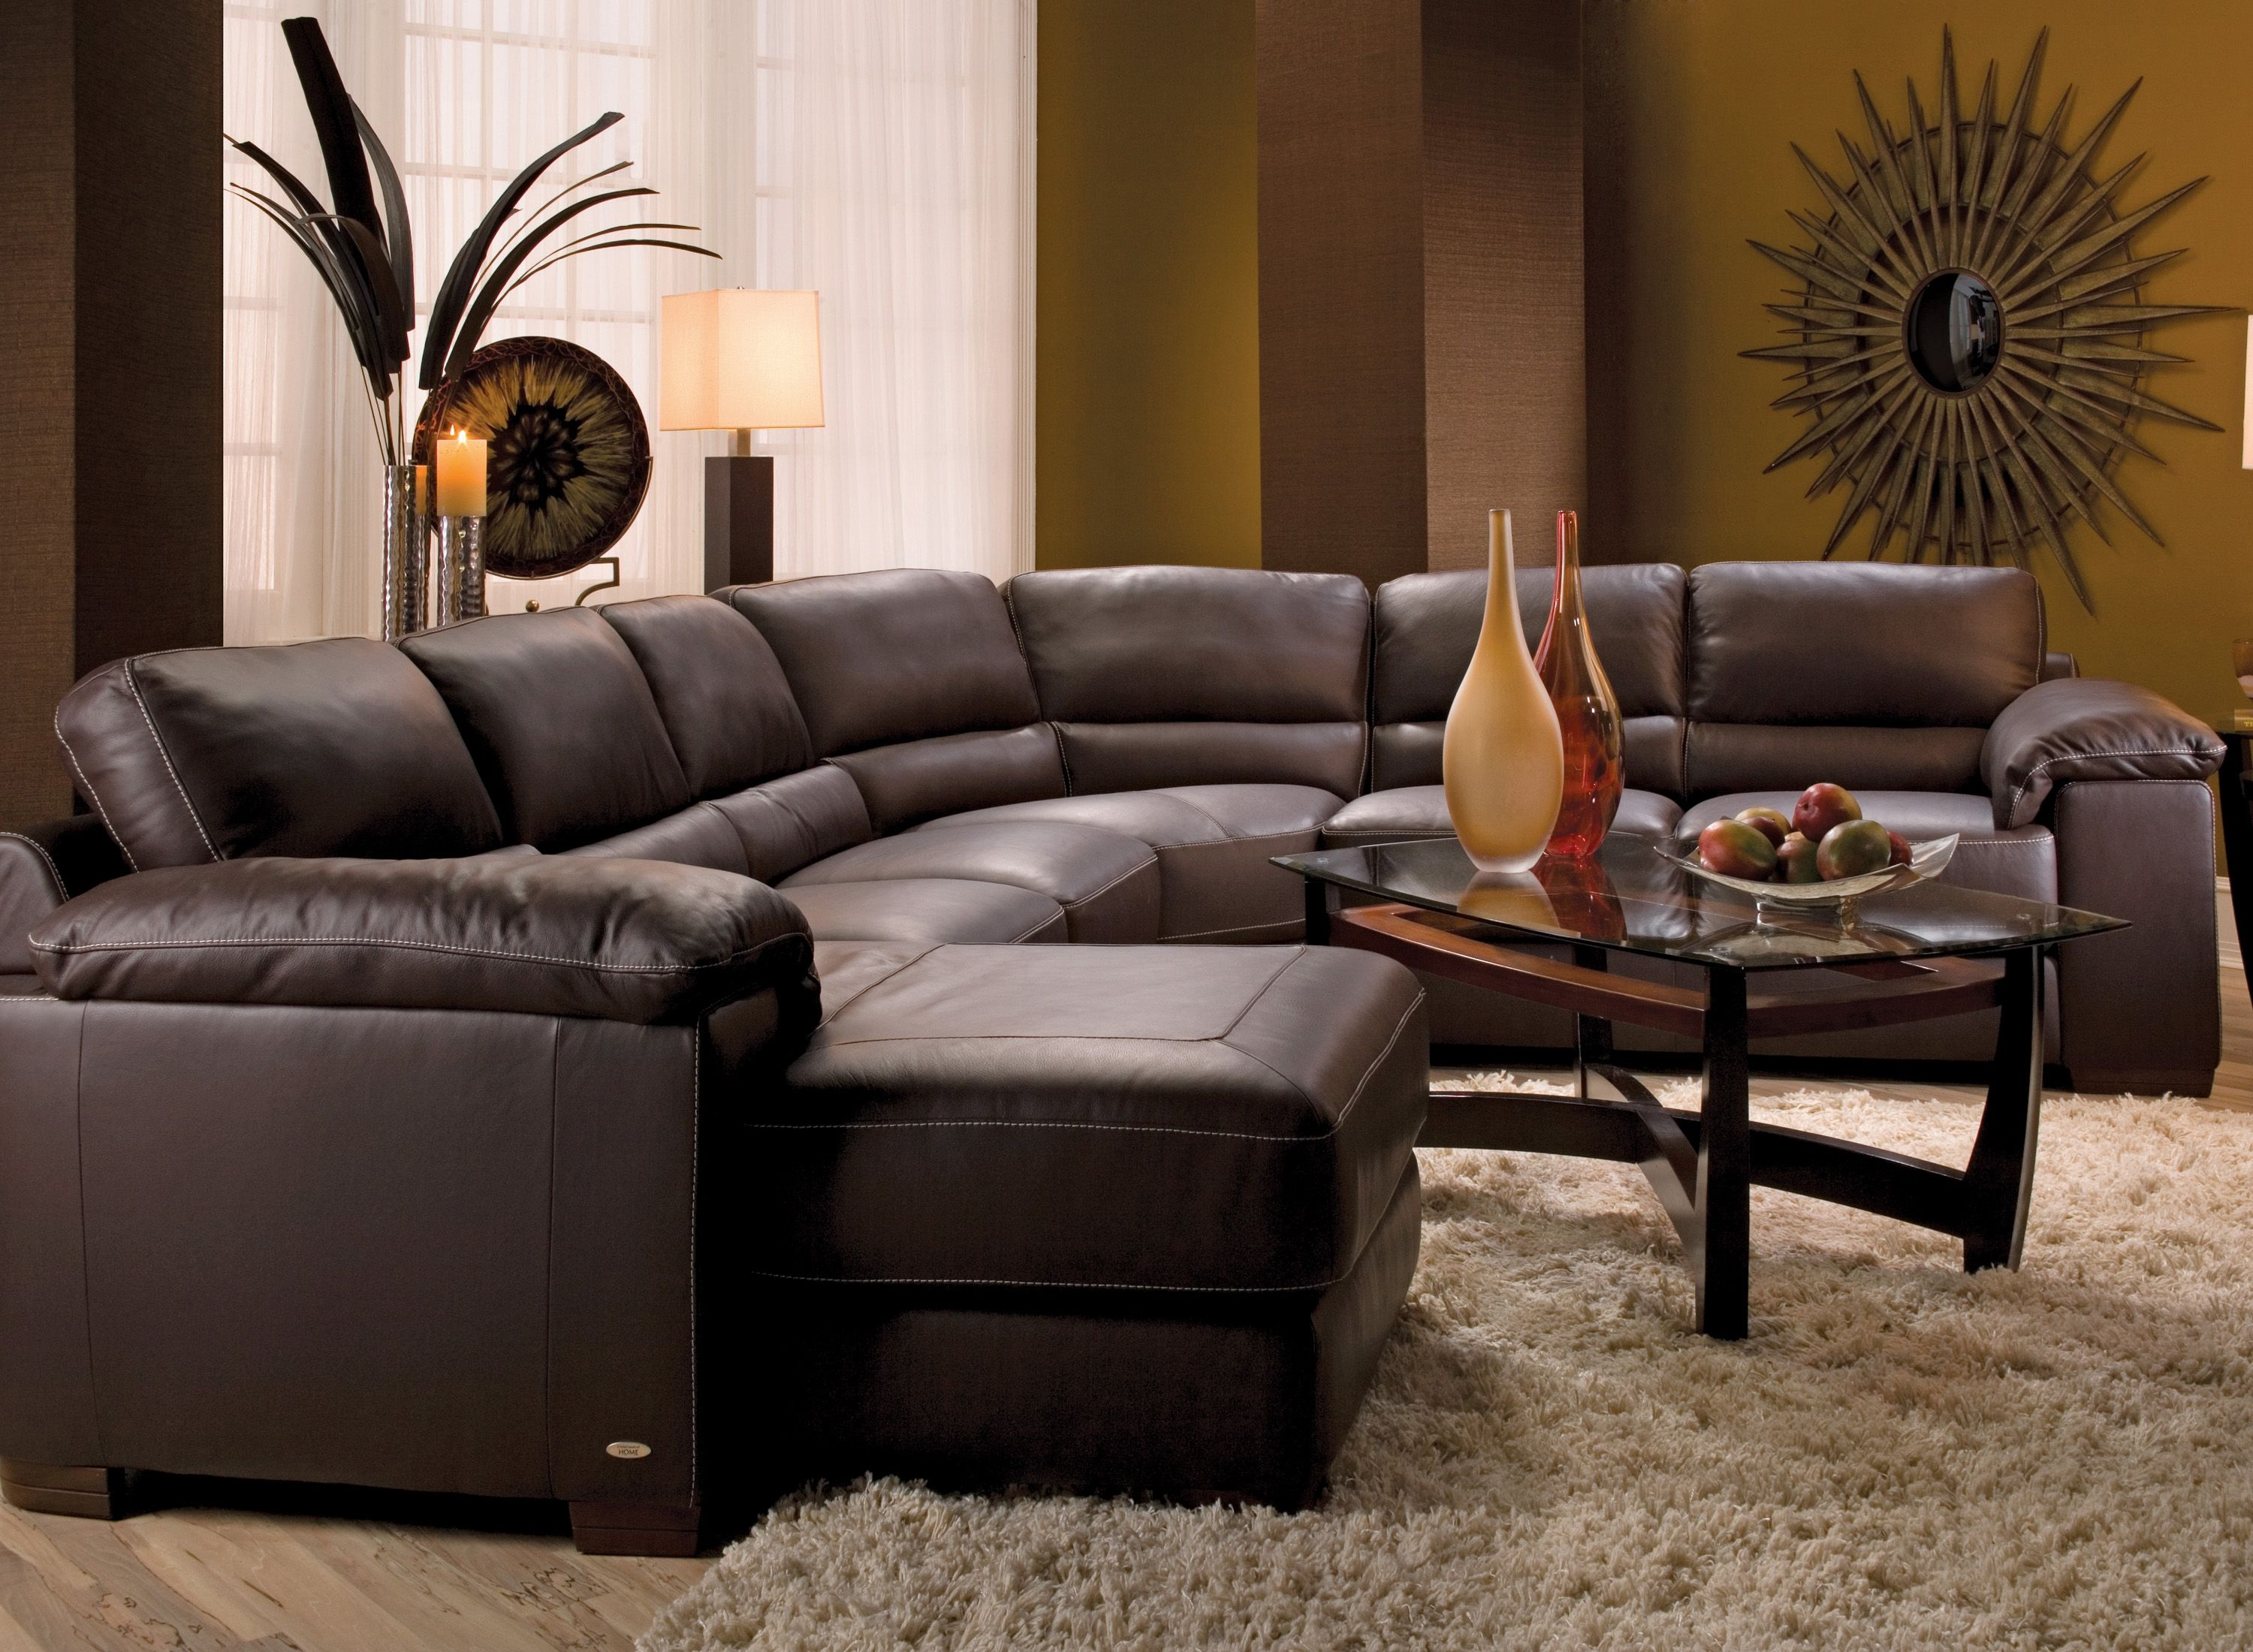 Get Luxurious Seating The Whole Family Can Enjoy With The Cindy